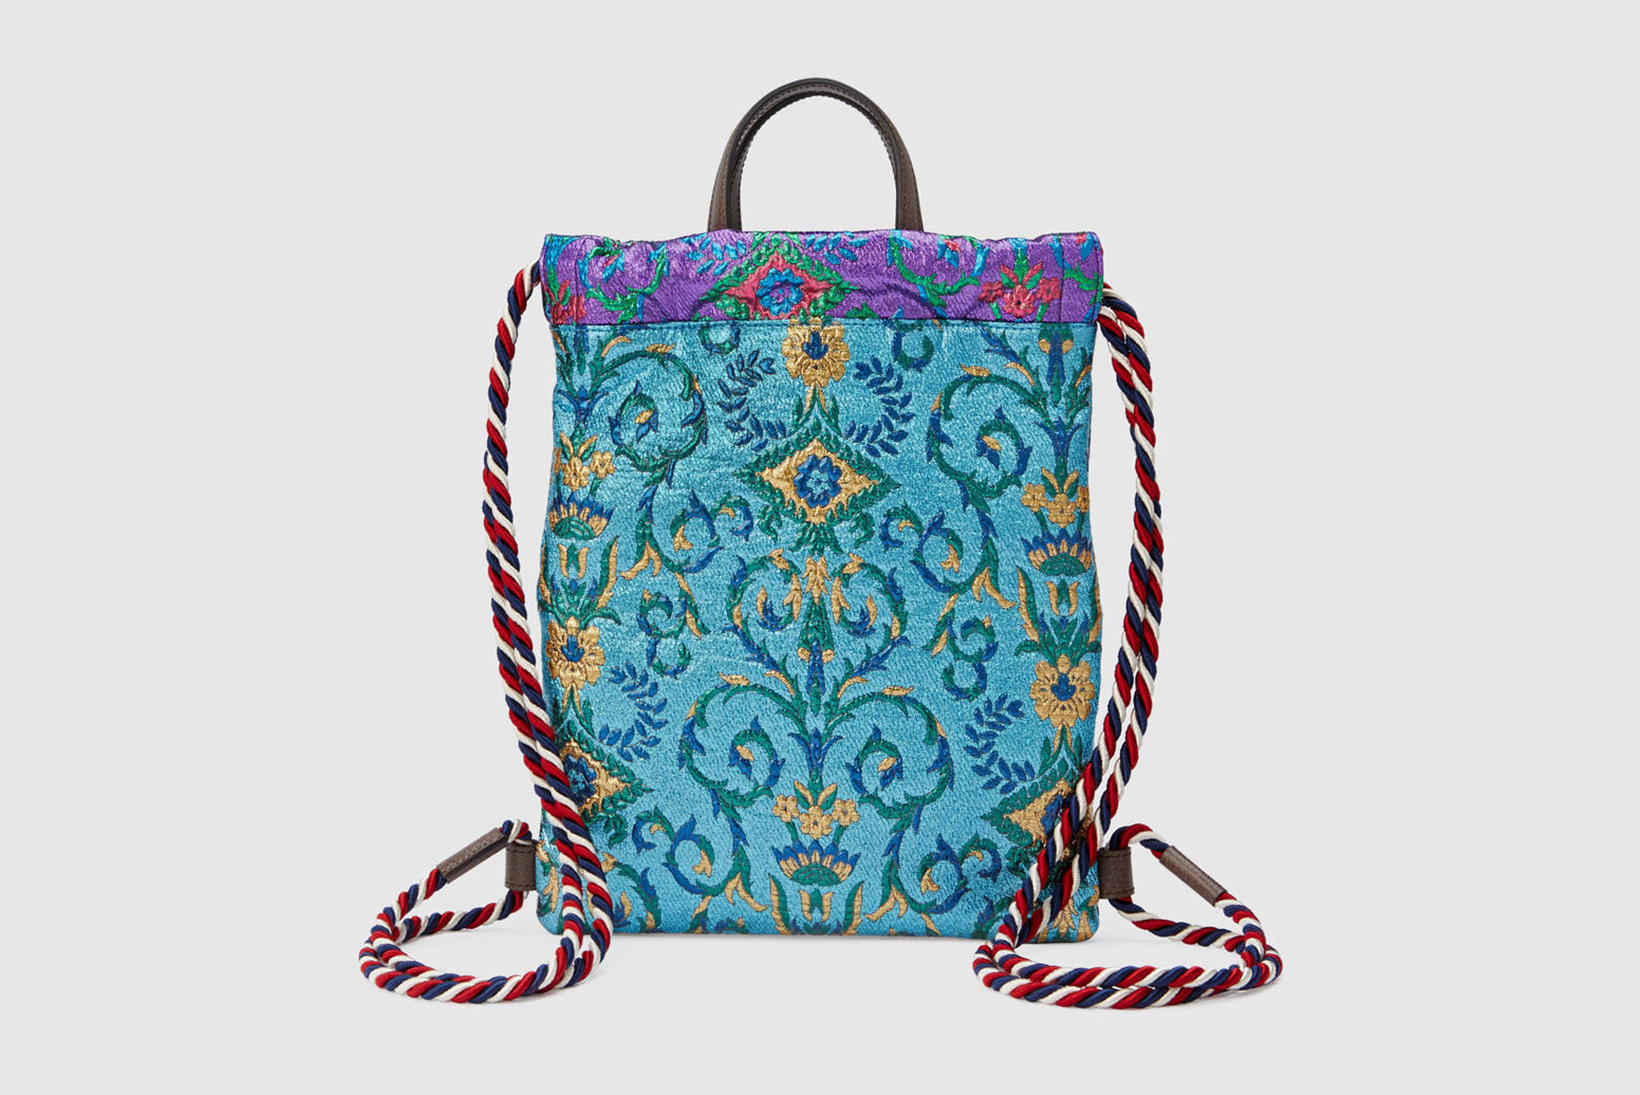 64f995297ae1 Modern Future Drawstring Backpack by Gucci - Design i need